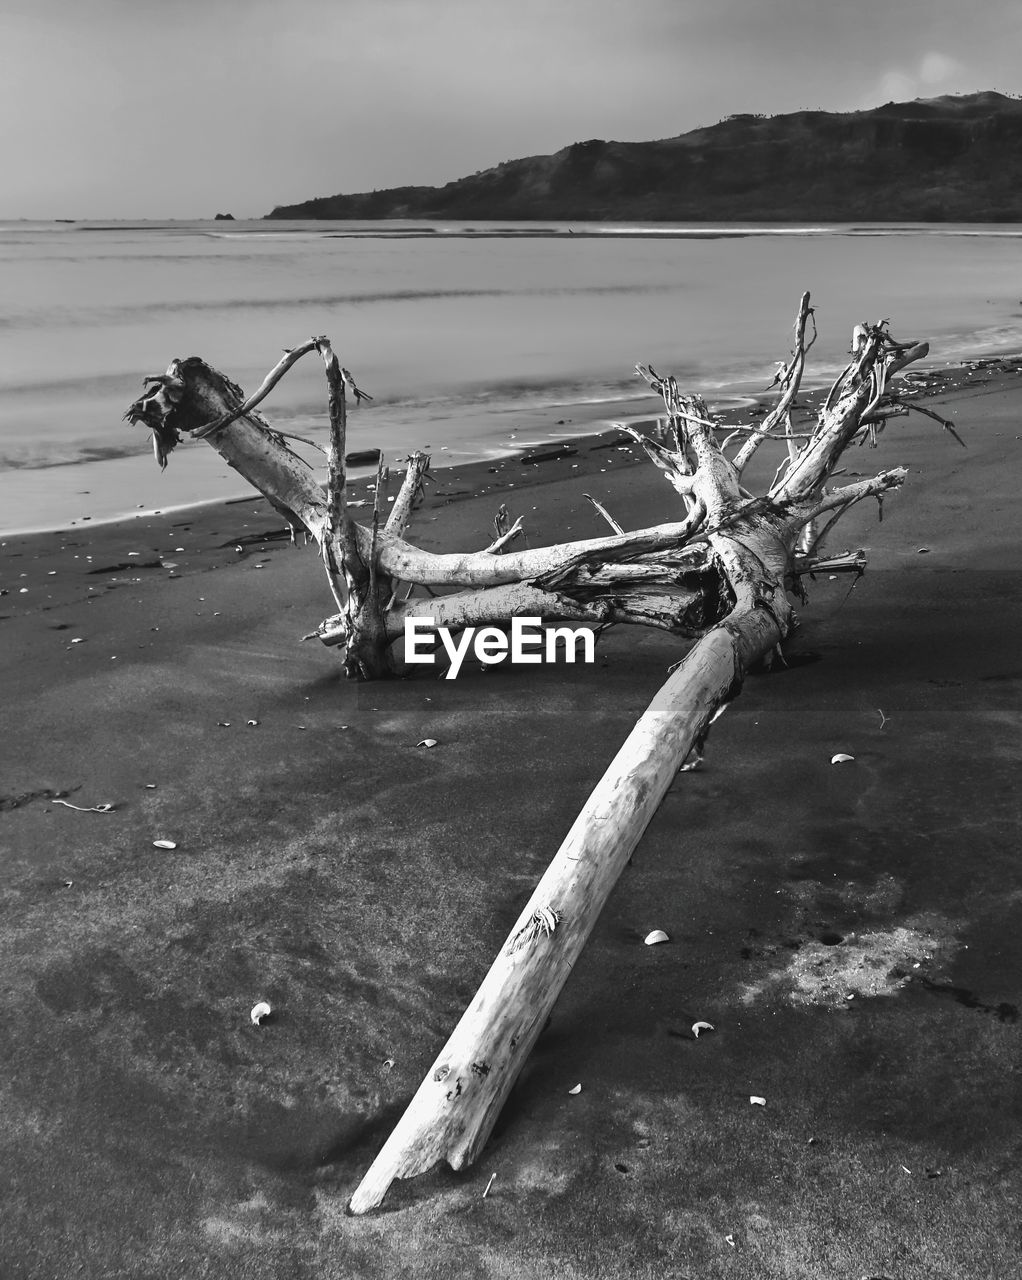 water, driftwood, wood - material, nature, day, no people, wood, land, tranquility, sea, sky, beach, broken, tree, outdoors, dead plant, log, timber, scenics - nature